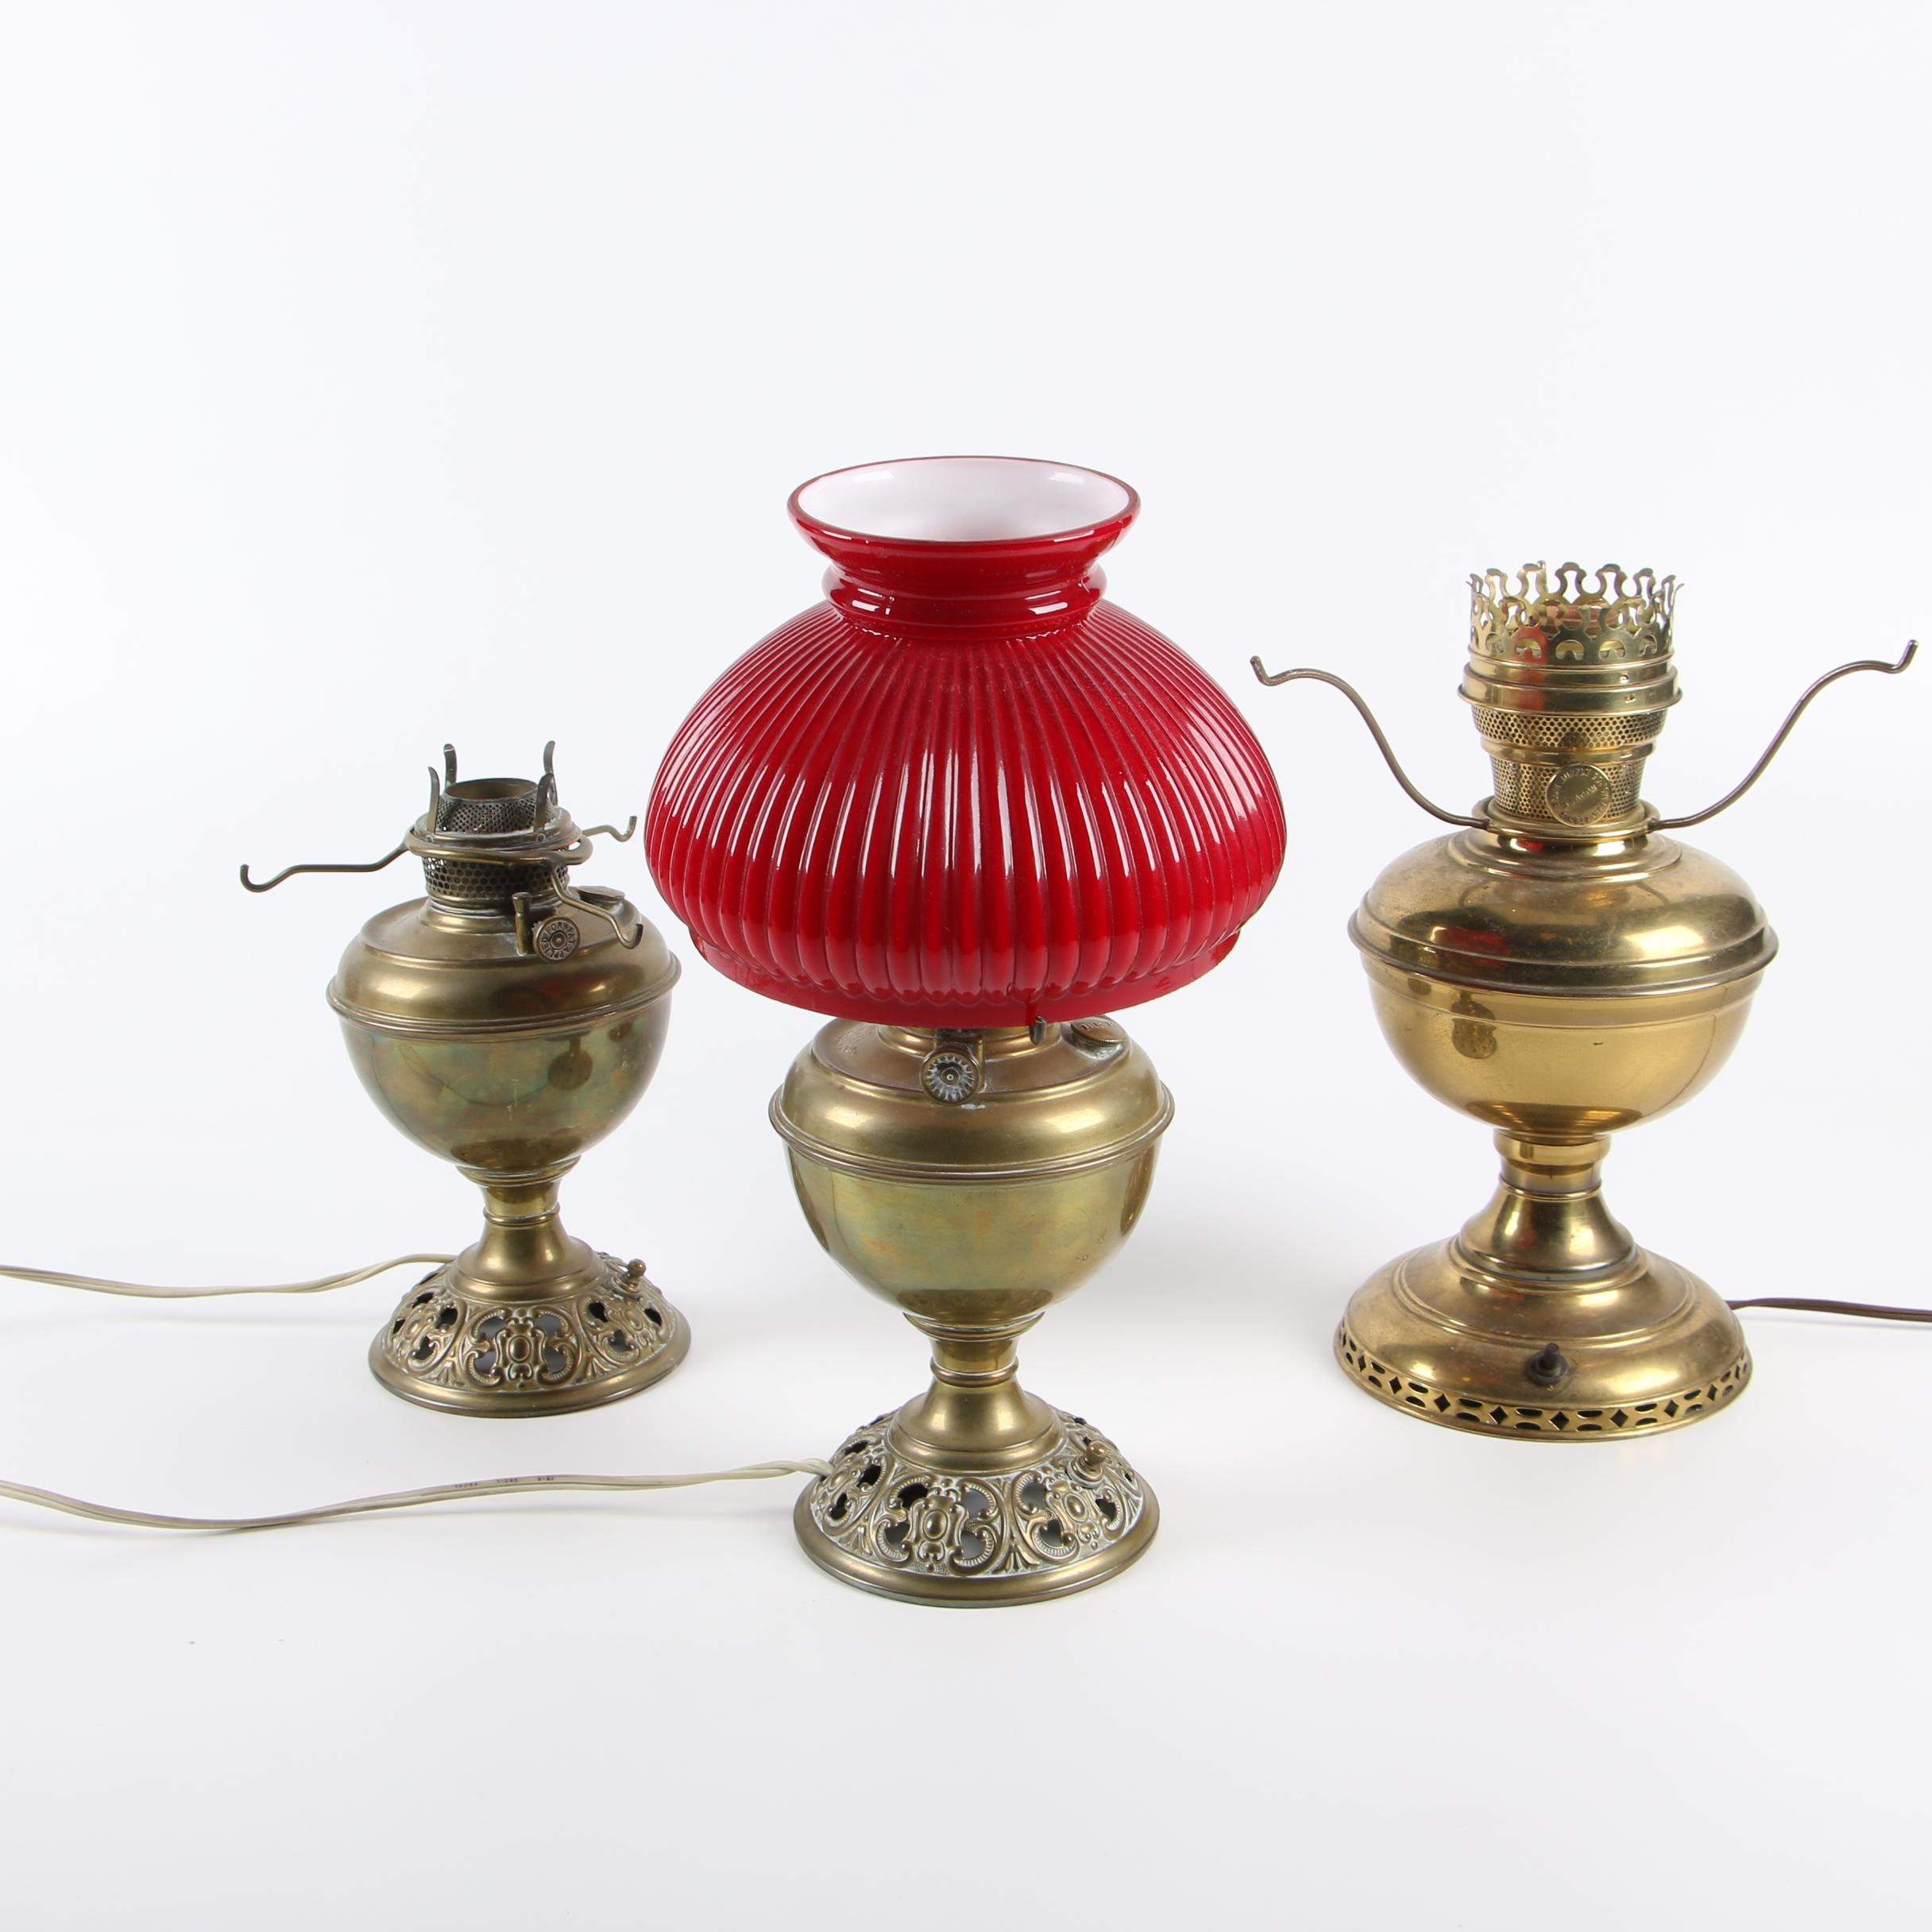 Bradley and Hubbard Converted Oil Lamps with Red Cased Glass Shade